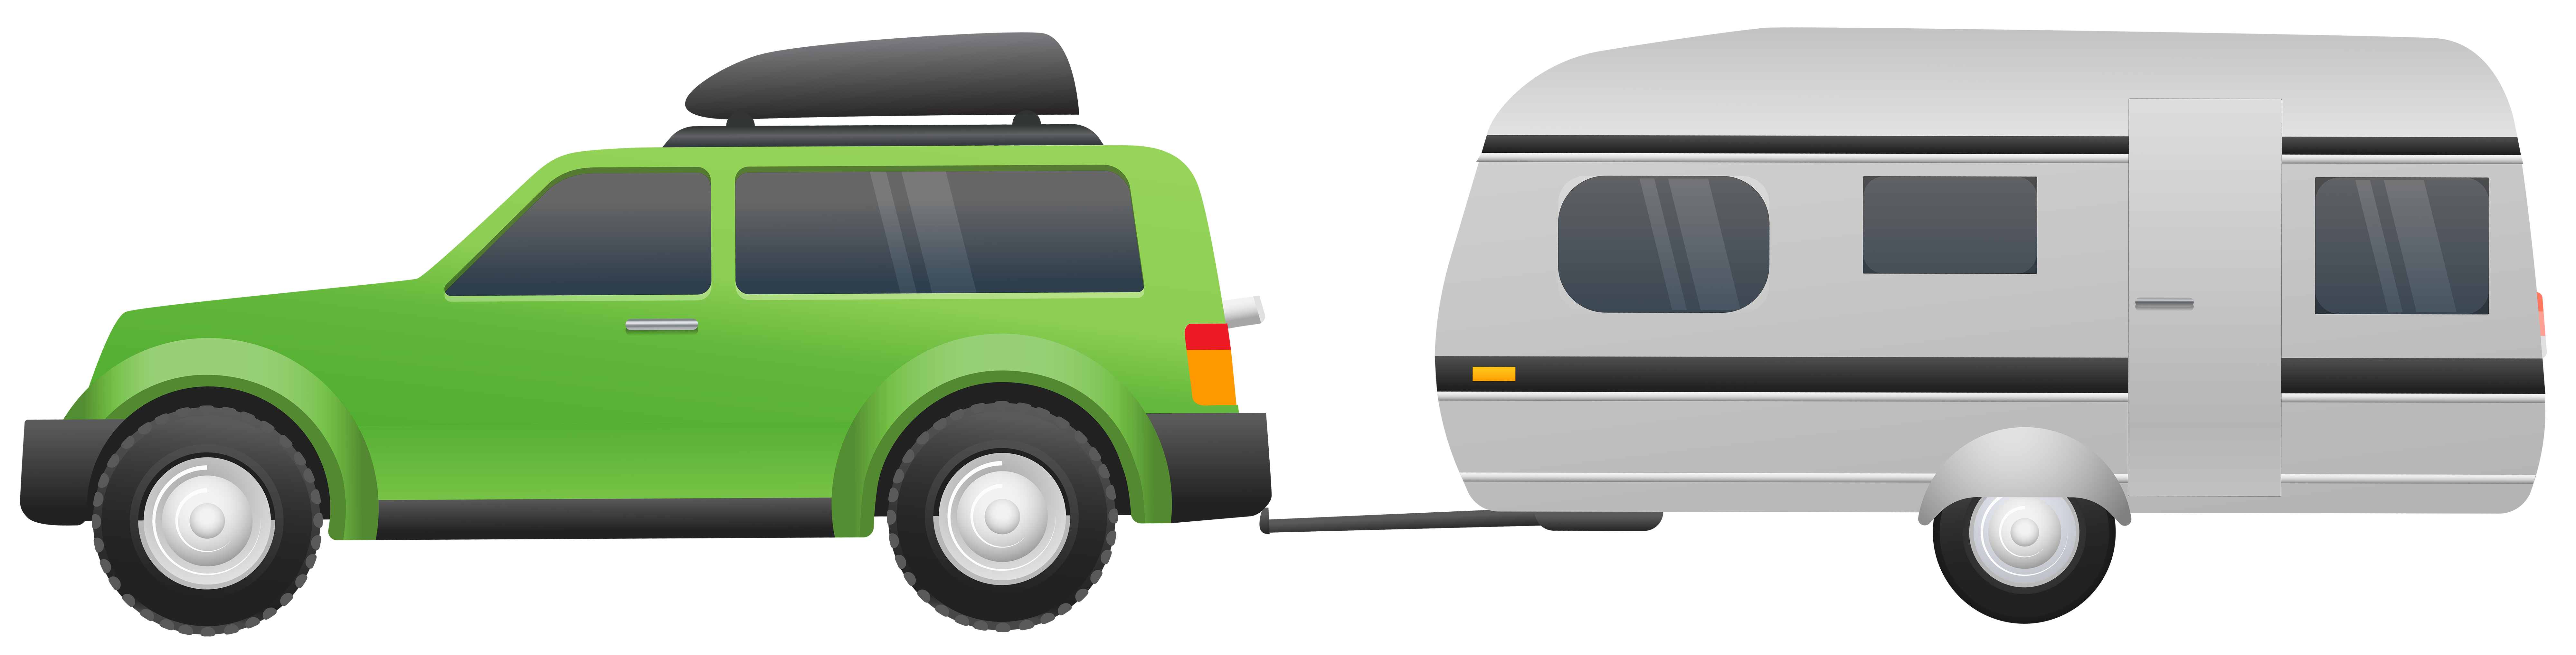 Free clipart images car png free download Car with Caravan Clip Art PNG Image | Gallery Yopriceville - High ... png free download